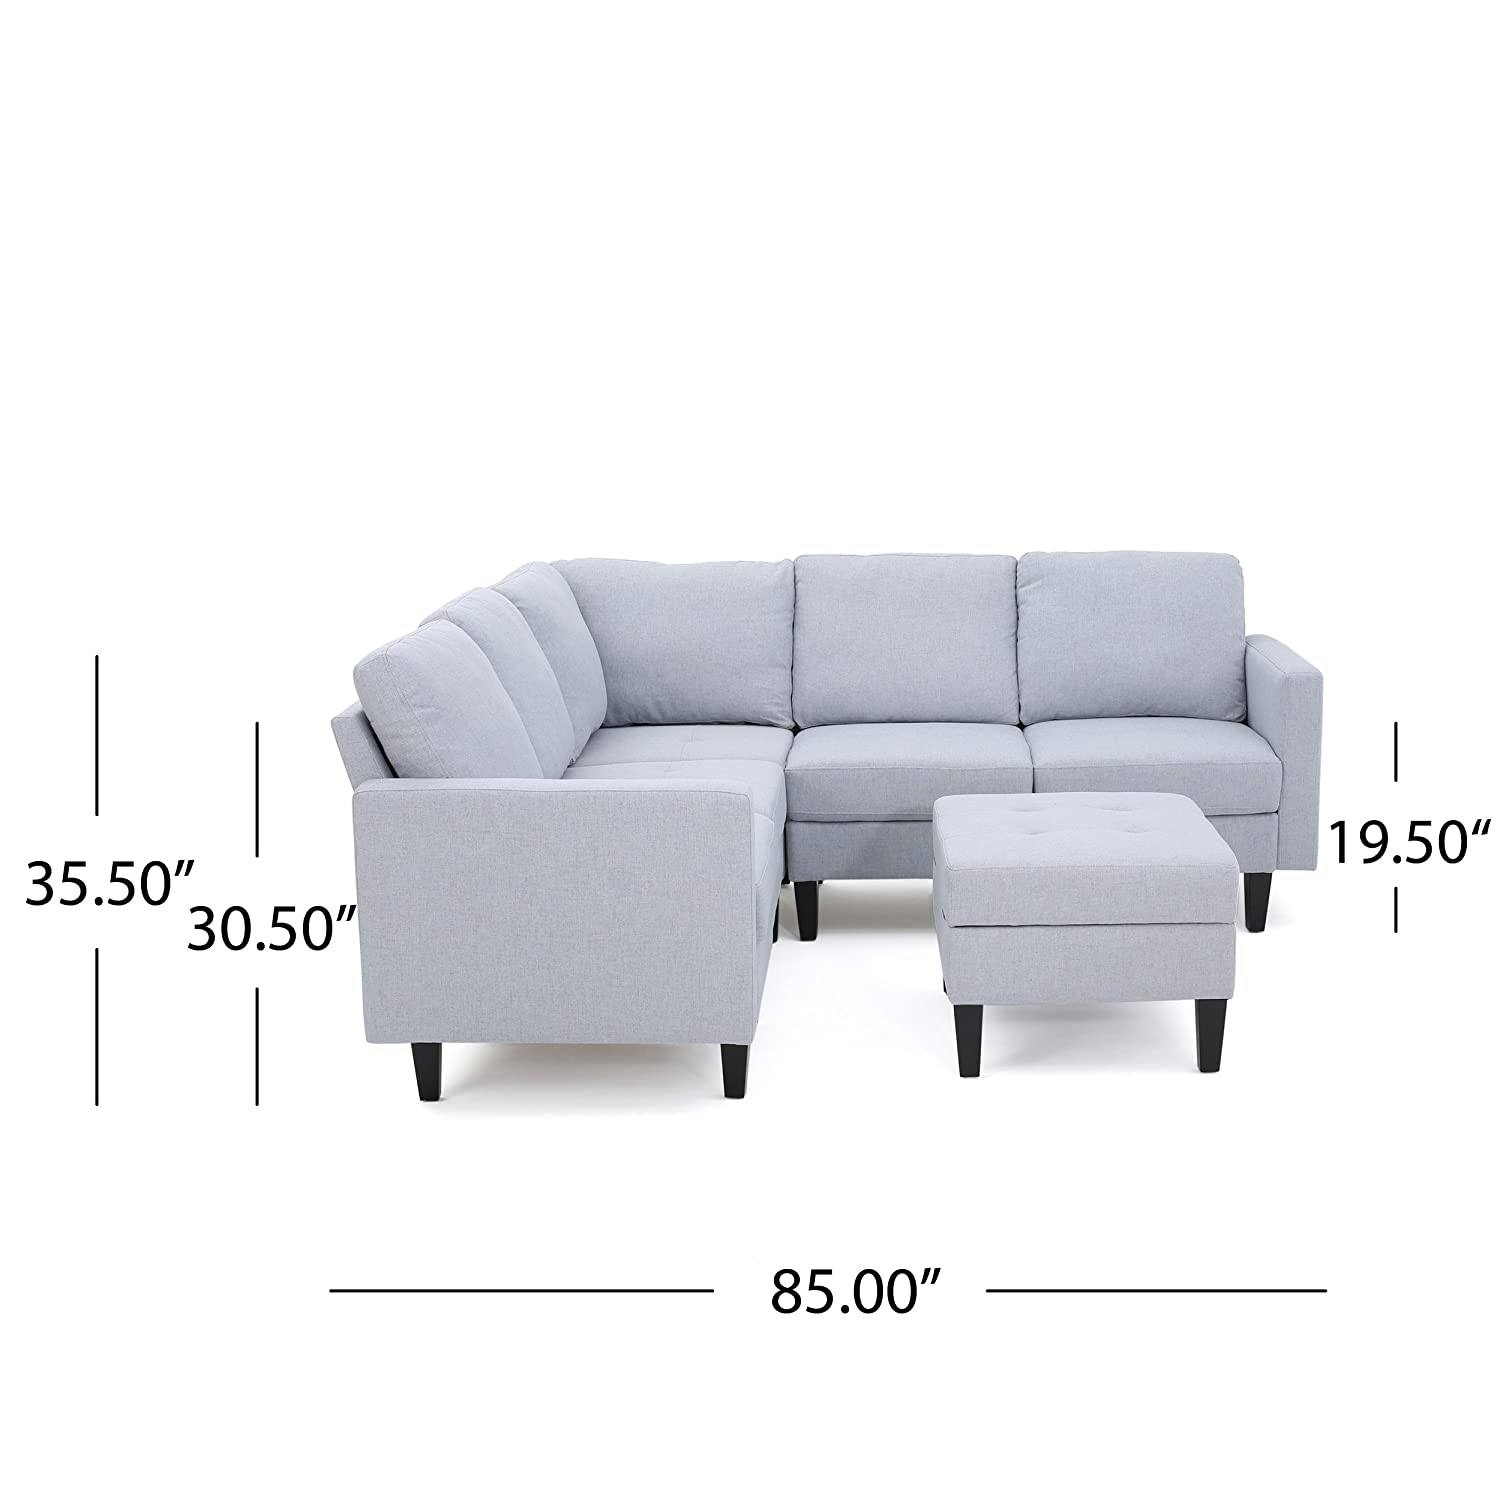 Amazon Bridger Light Grey Fabric Sectional Couch with Ottoman